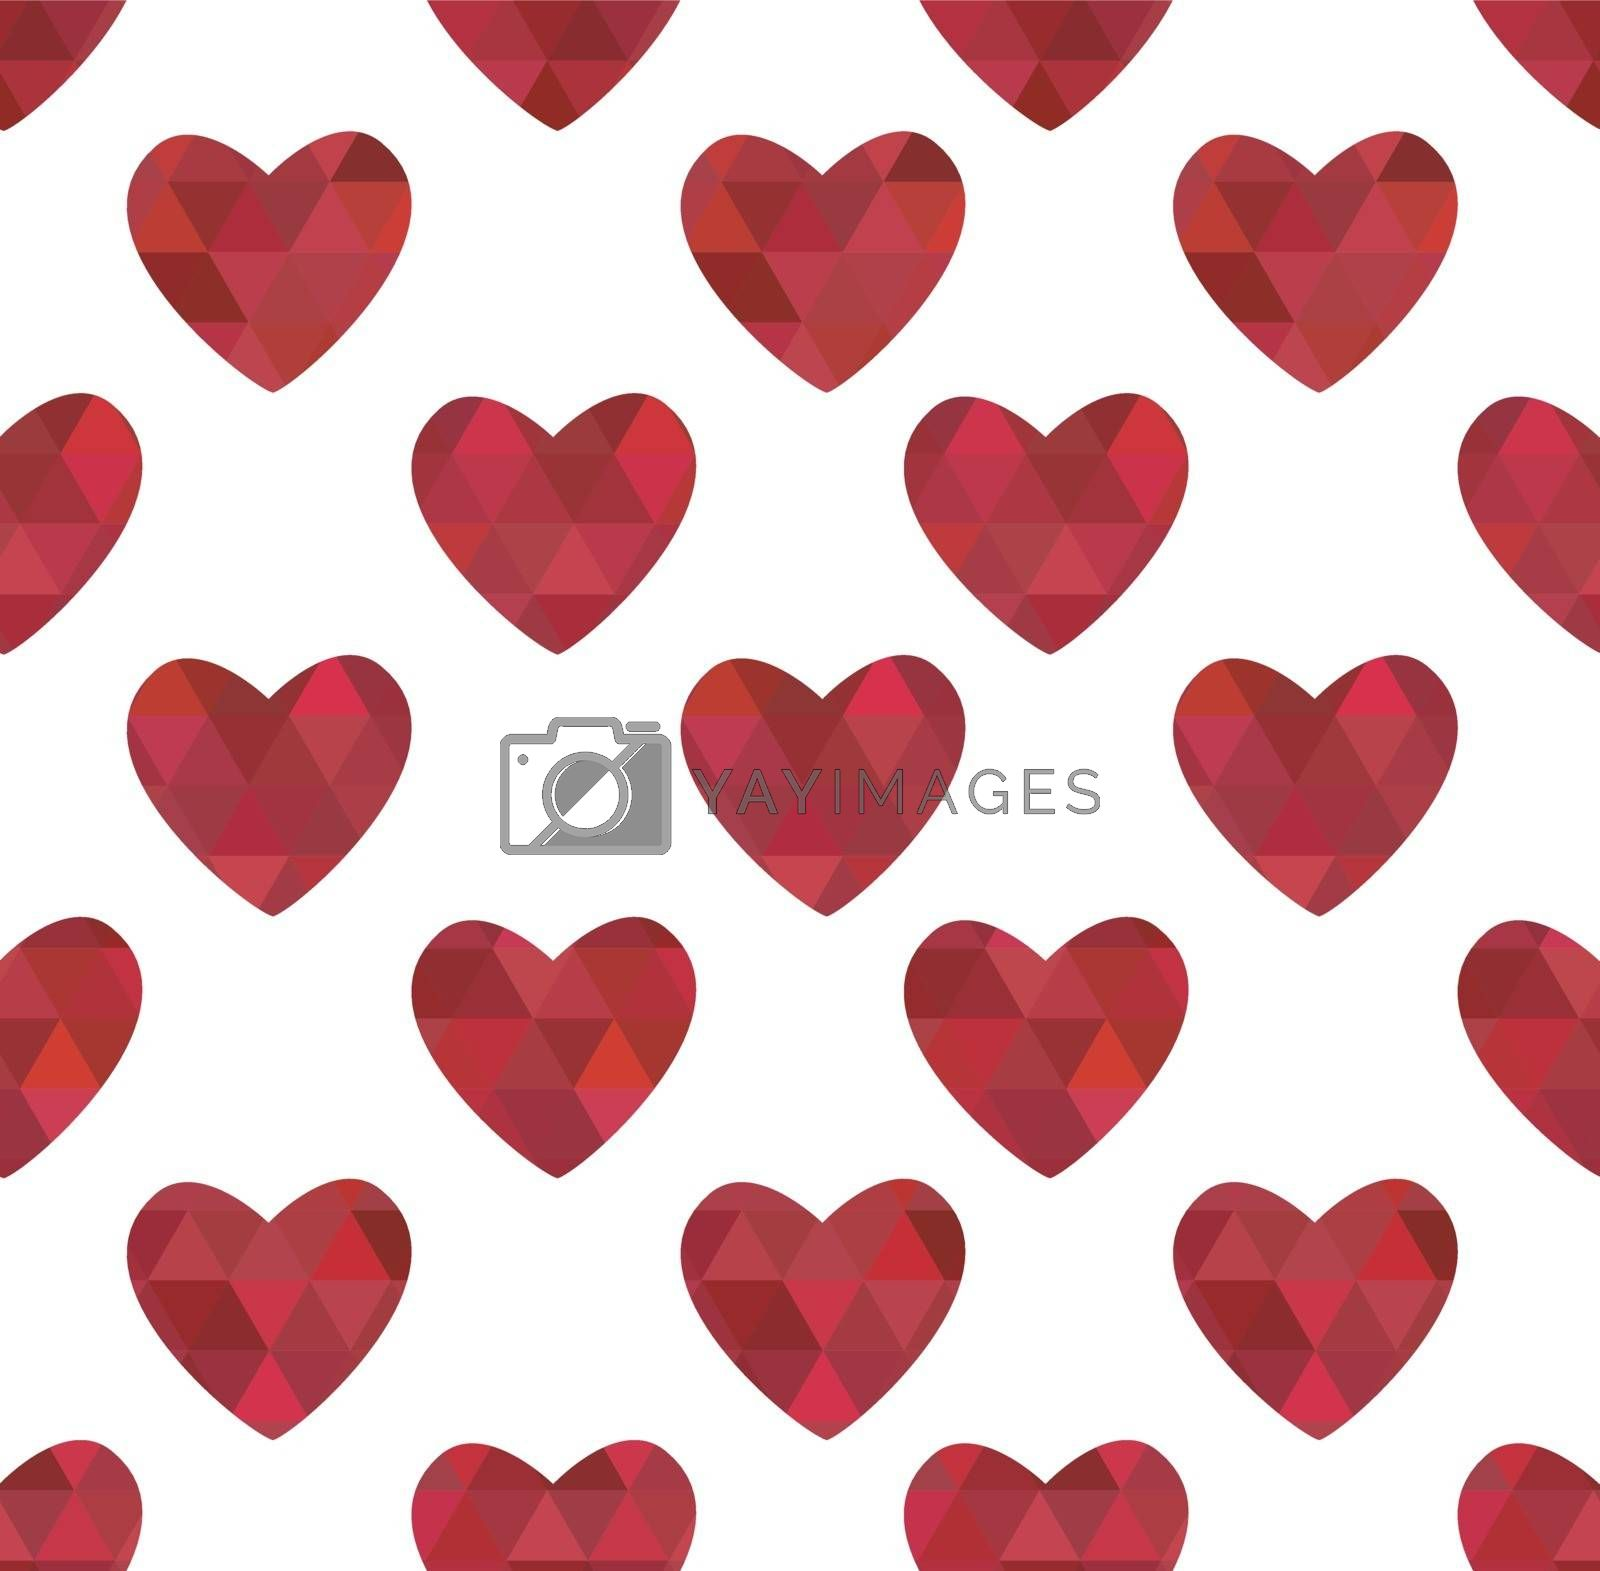 Seamless texture of red hearts in the crystalline style